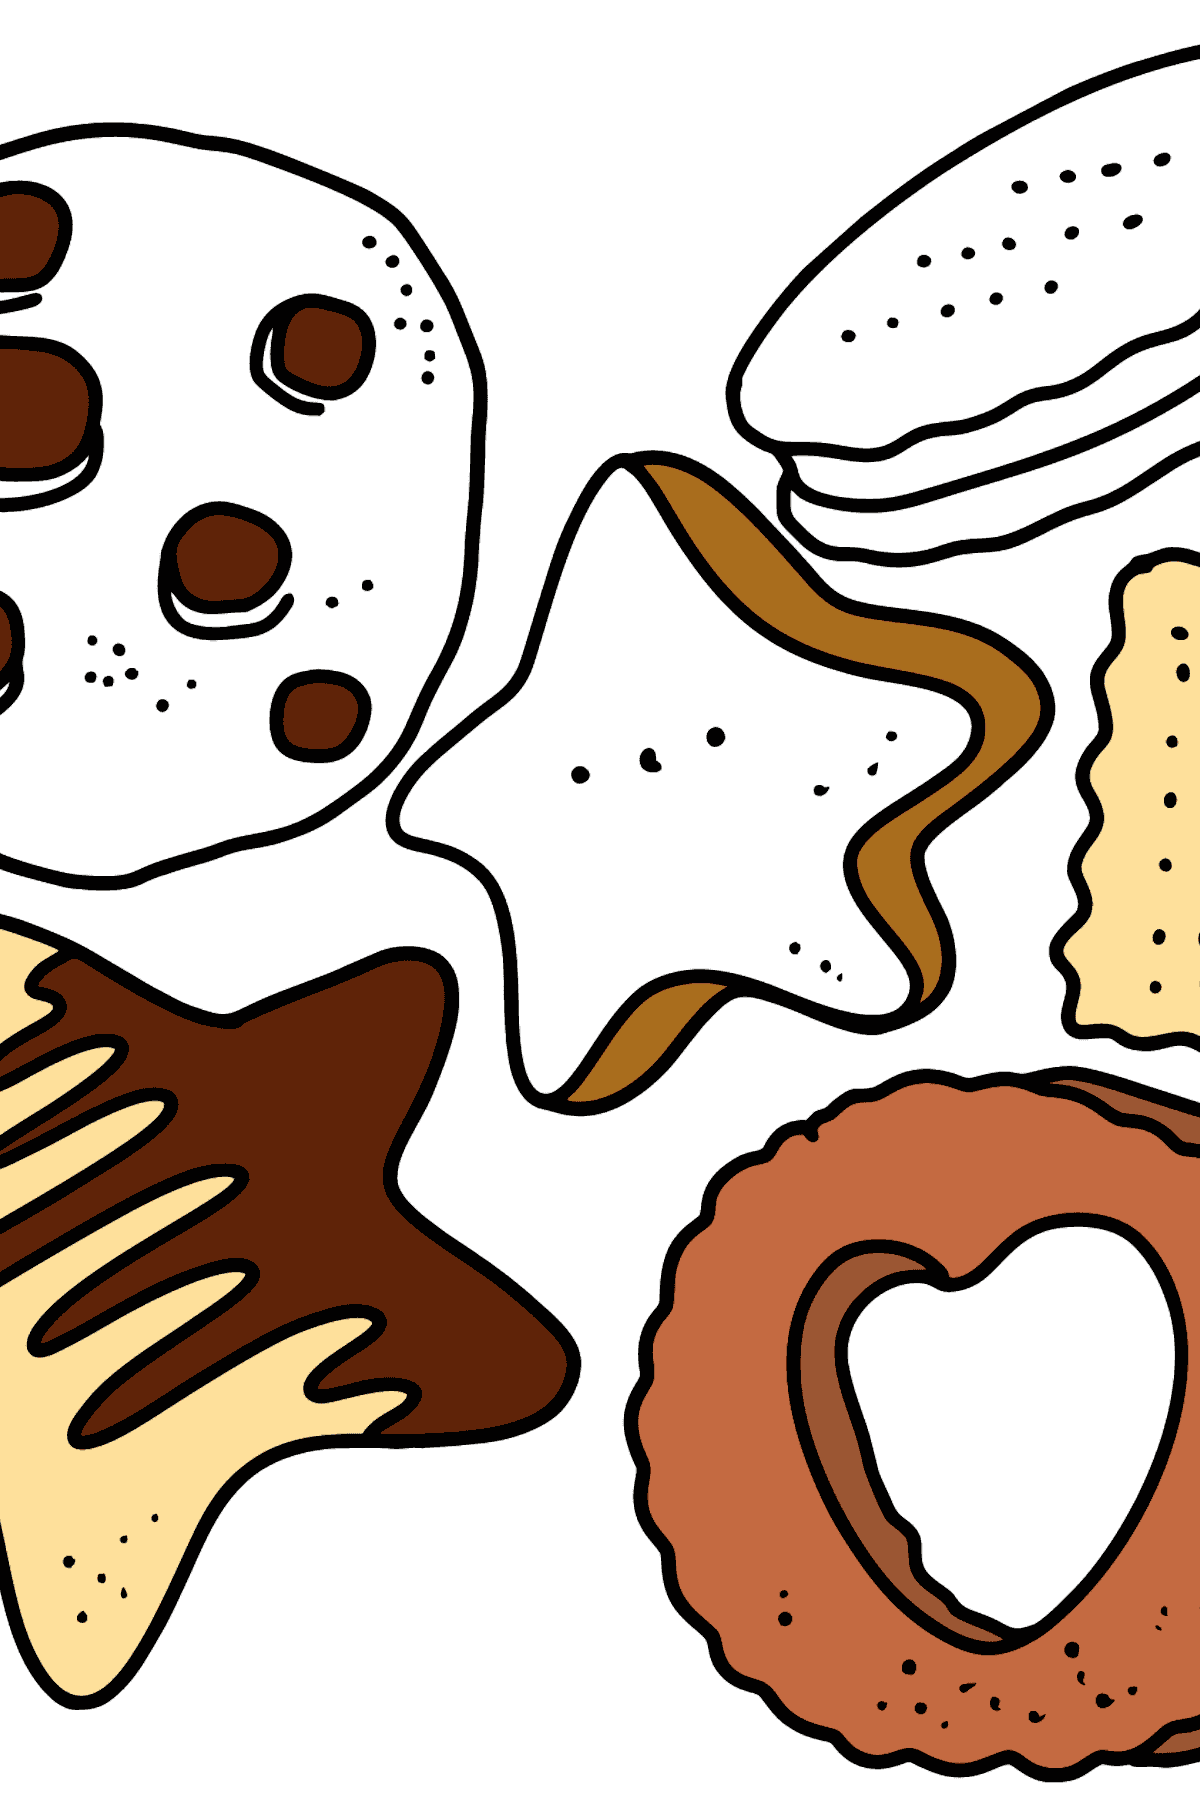 Coloring page - Set of cookies - Coloring Pages for Kids